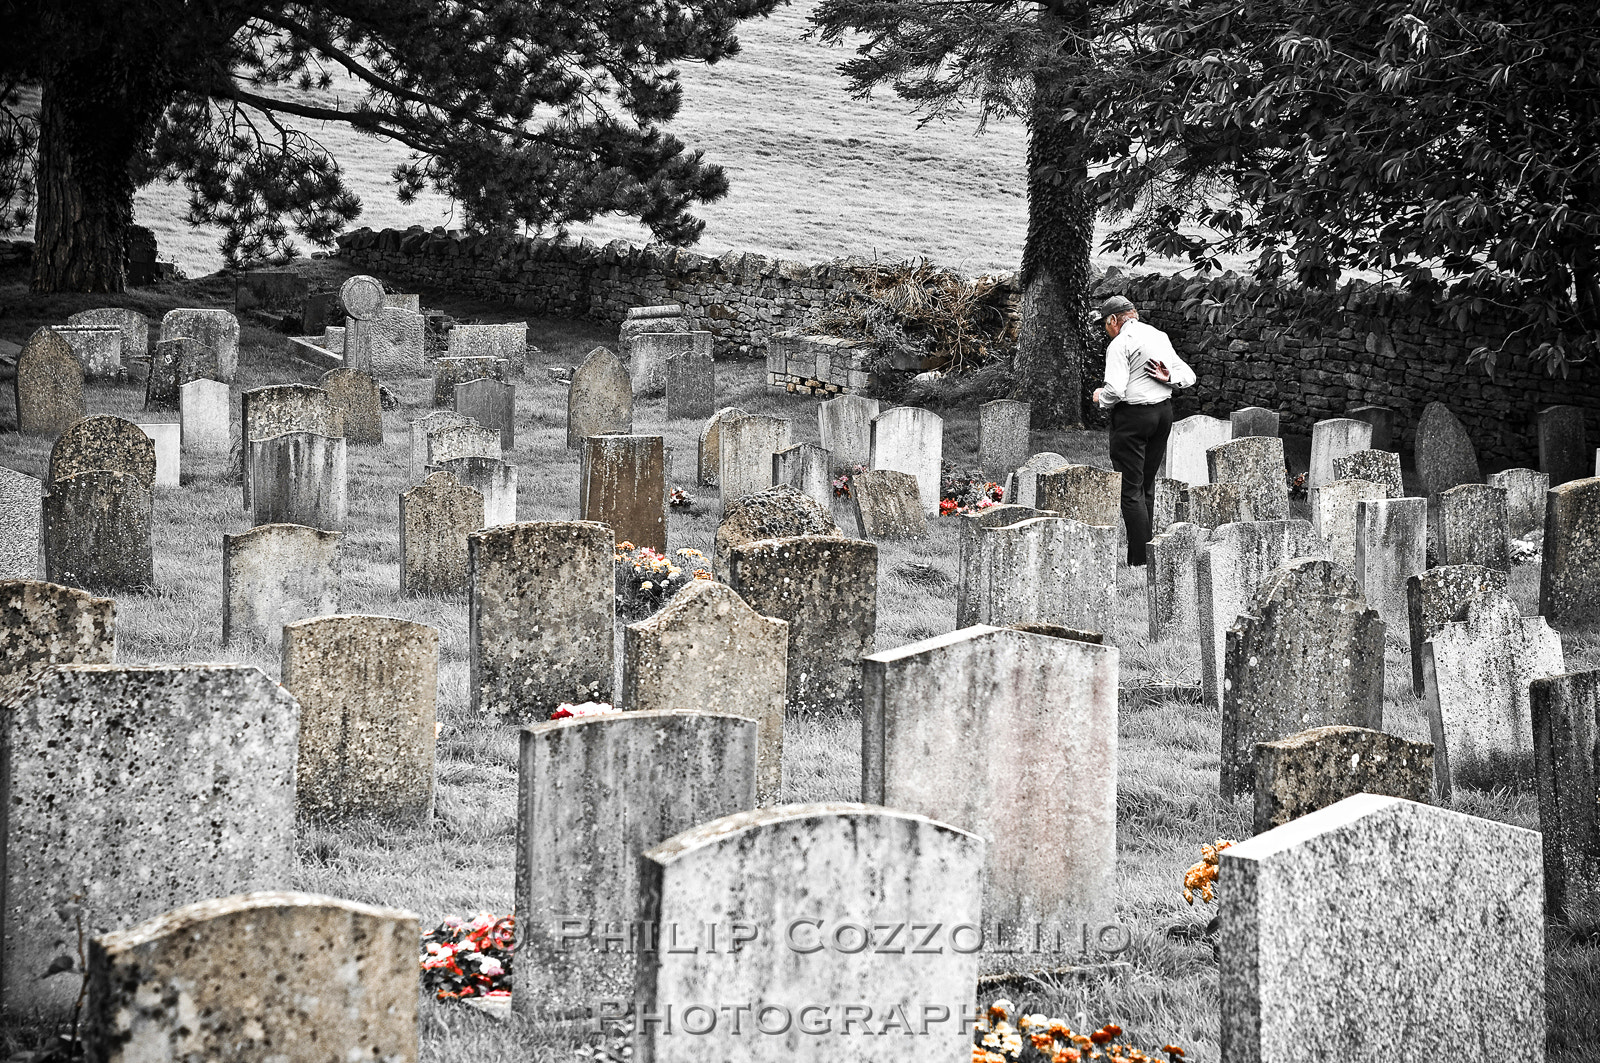 Photograph Cotswolds Cemetery by Philip Cozzolino on 500px